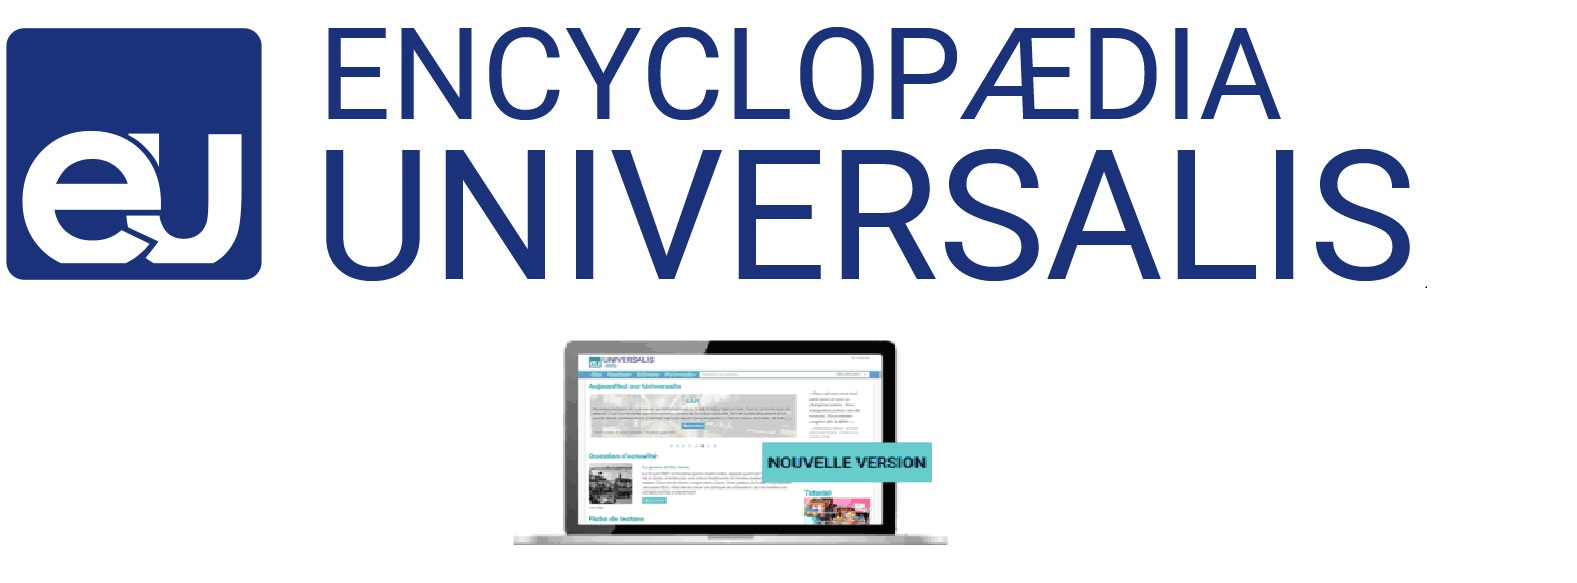 encyclopedie universalis etudiant